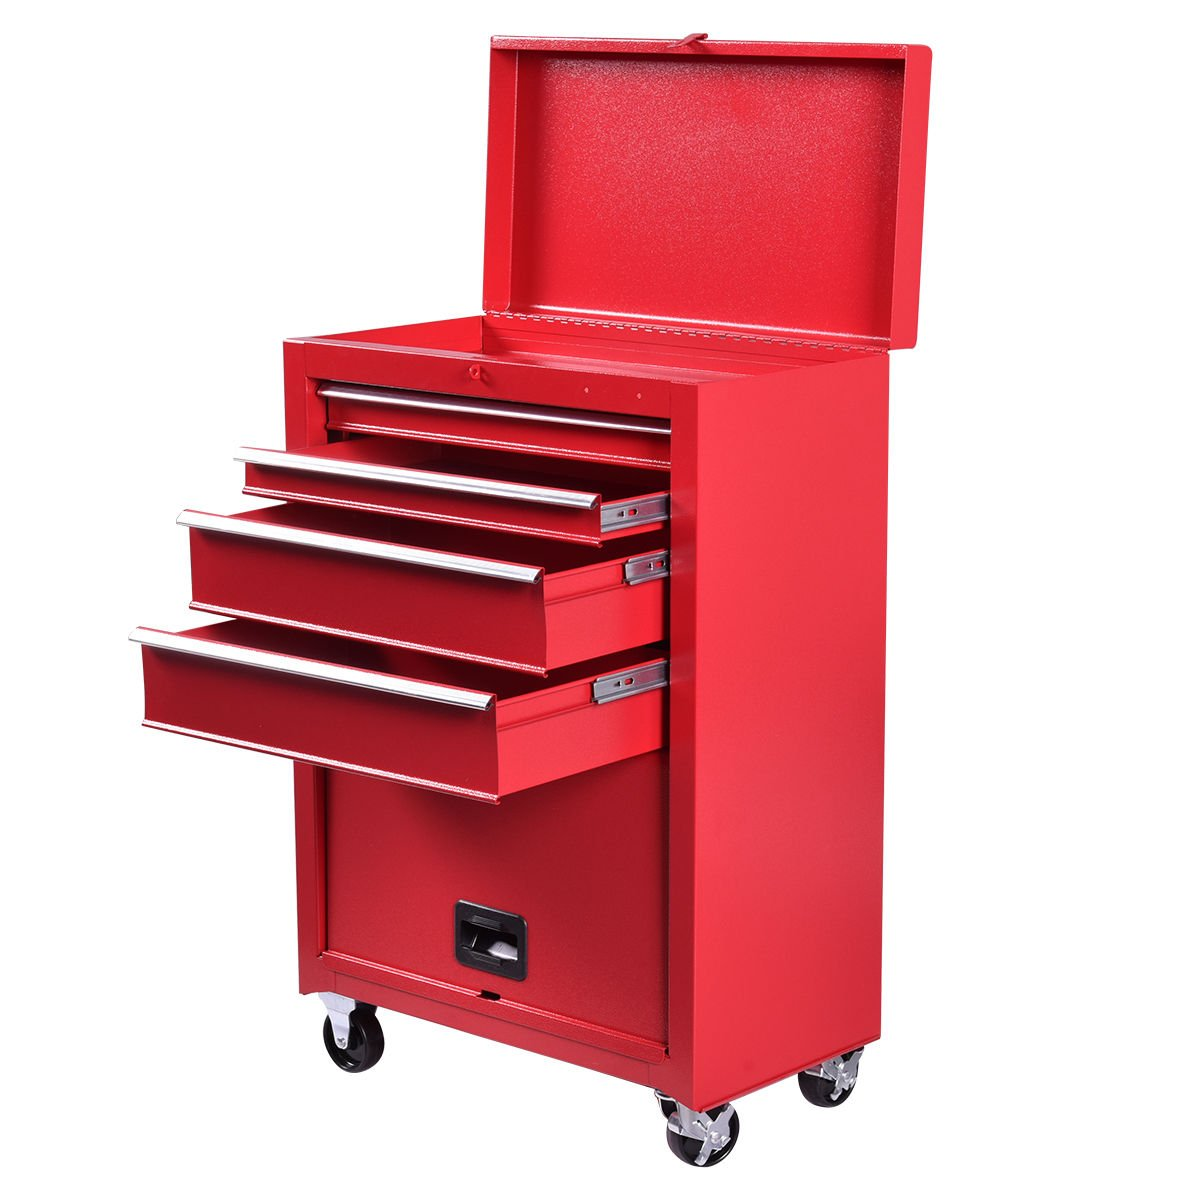 Goplus 22-Inch Steel Chest Roller Rolling Tool Chest Box On Wheels Cart Cabinet Combination w/ 4 Sliding Drawers, Red